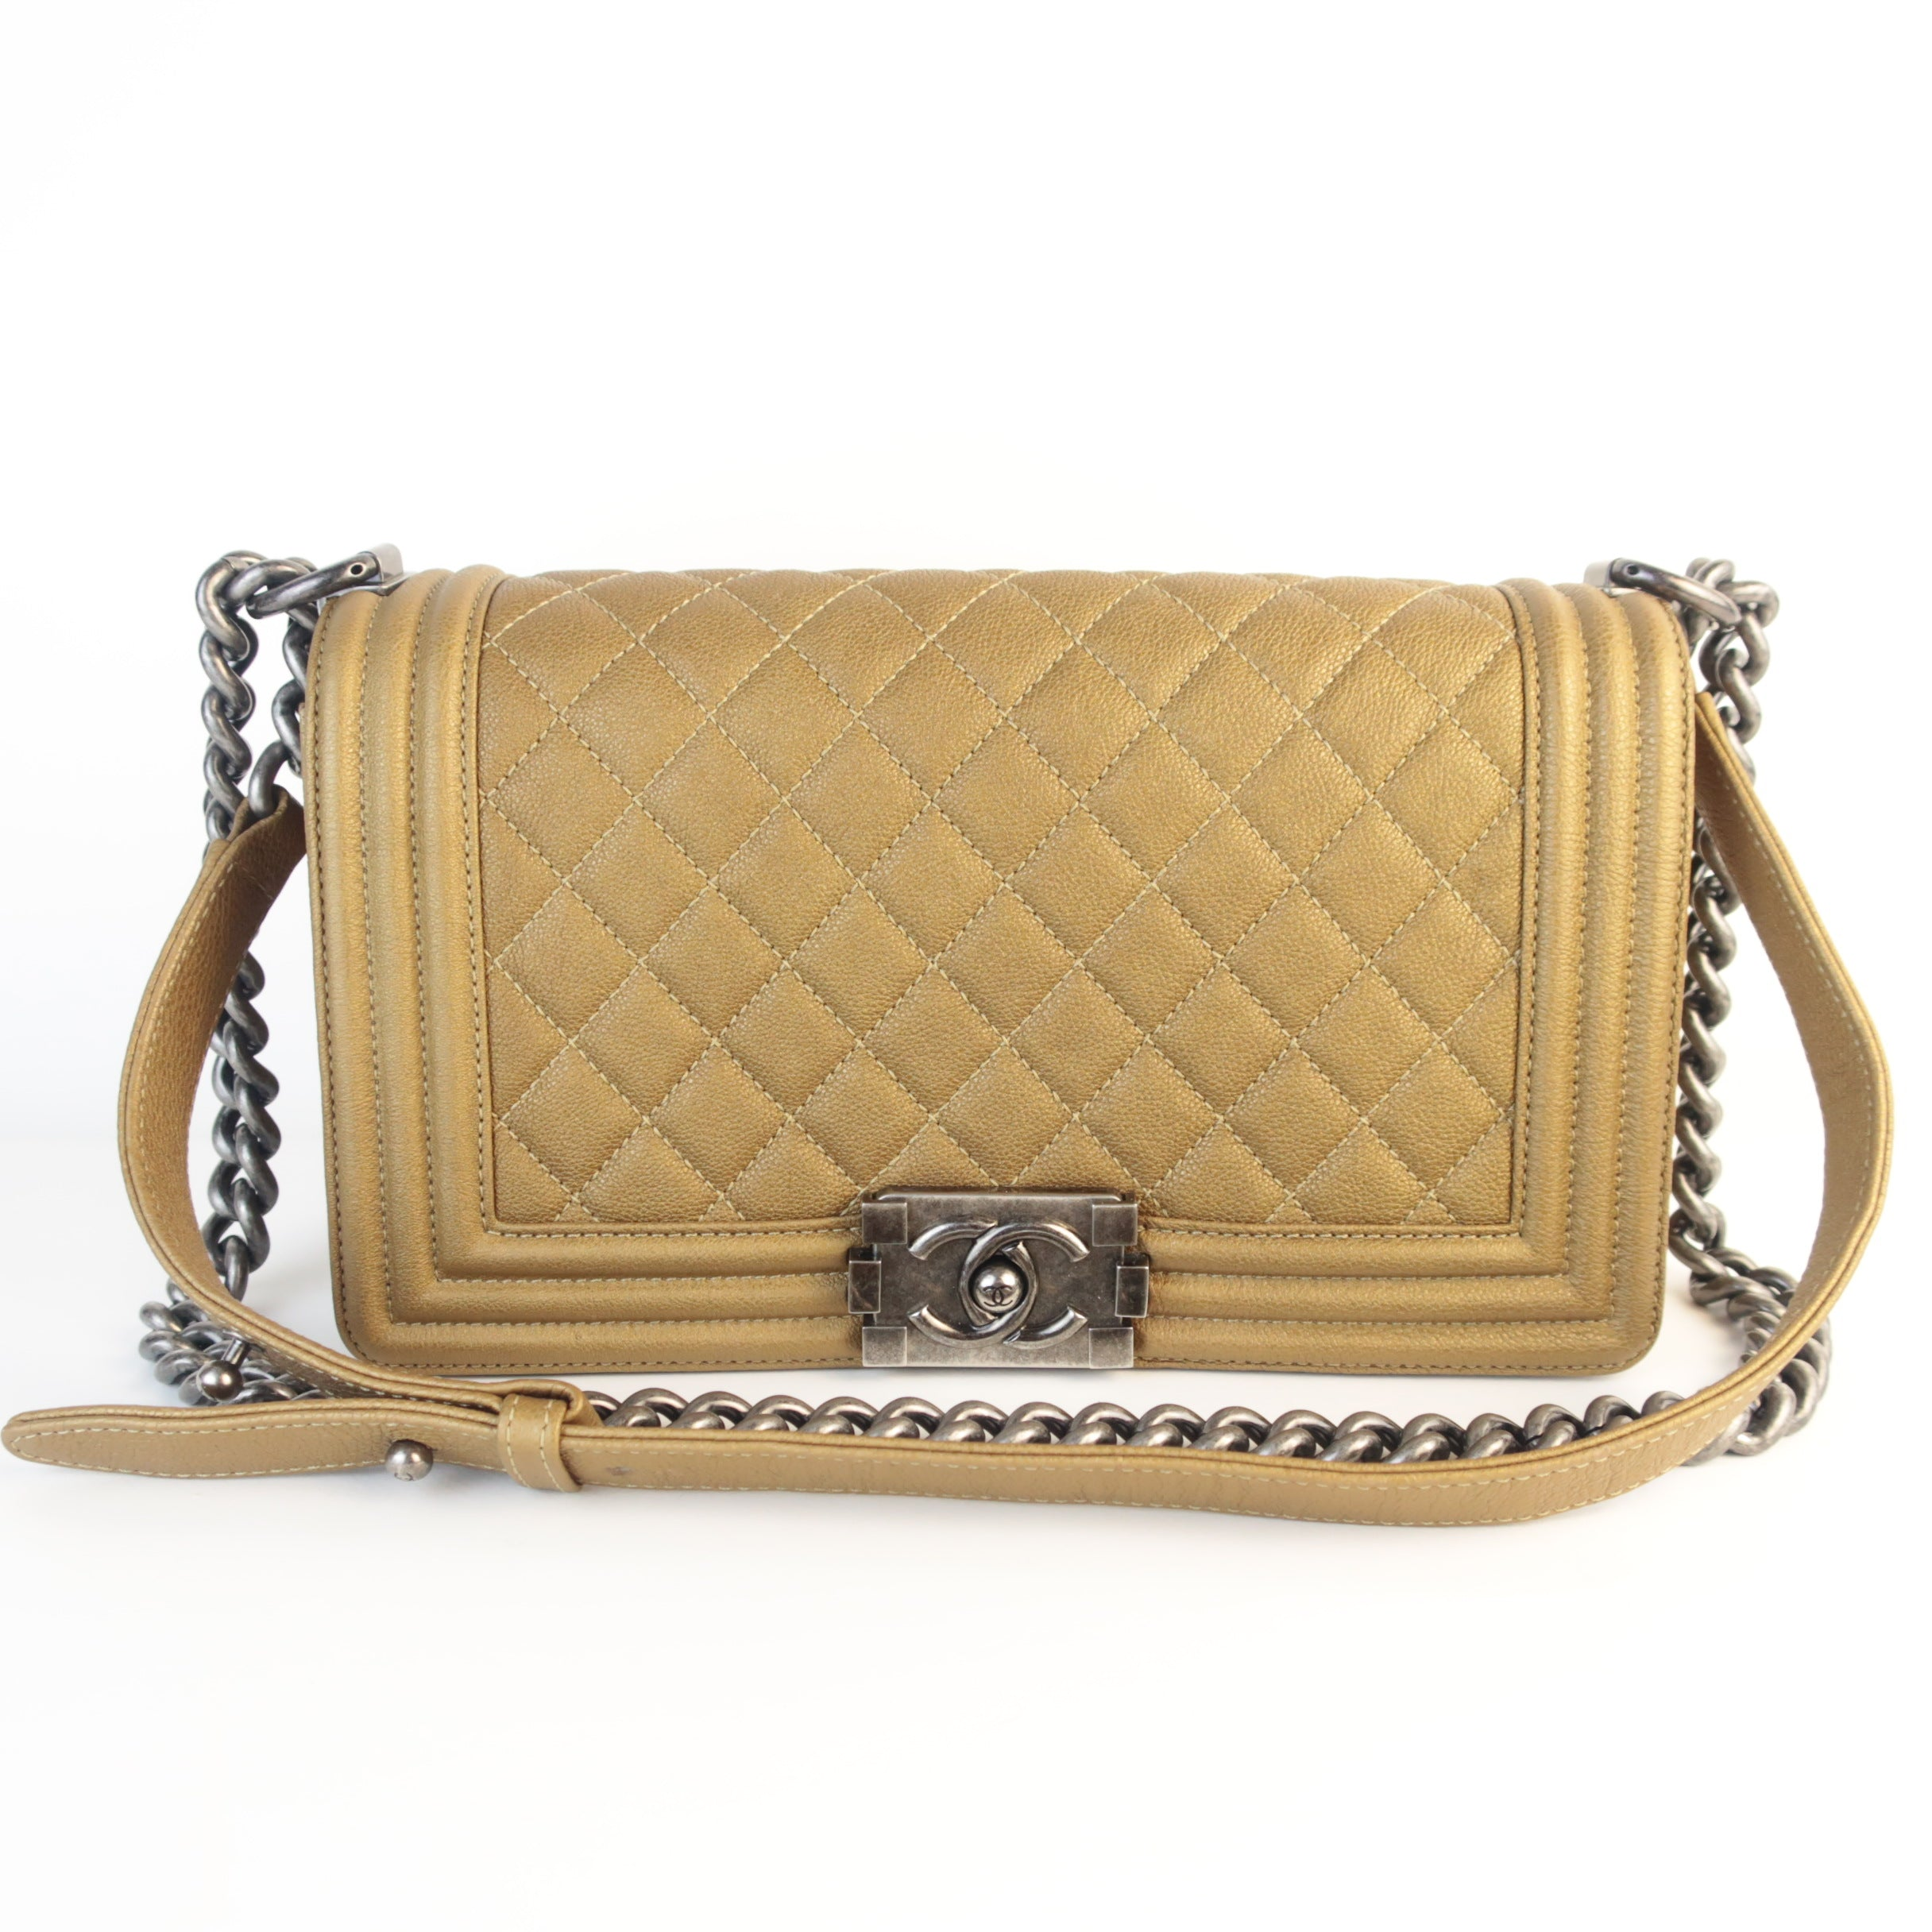 How Much Is Chanel? Chanel Price Guide how much is chanel boy